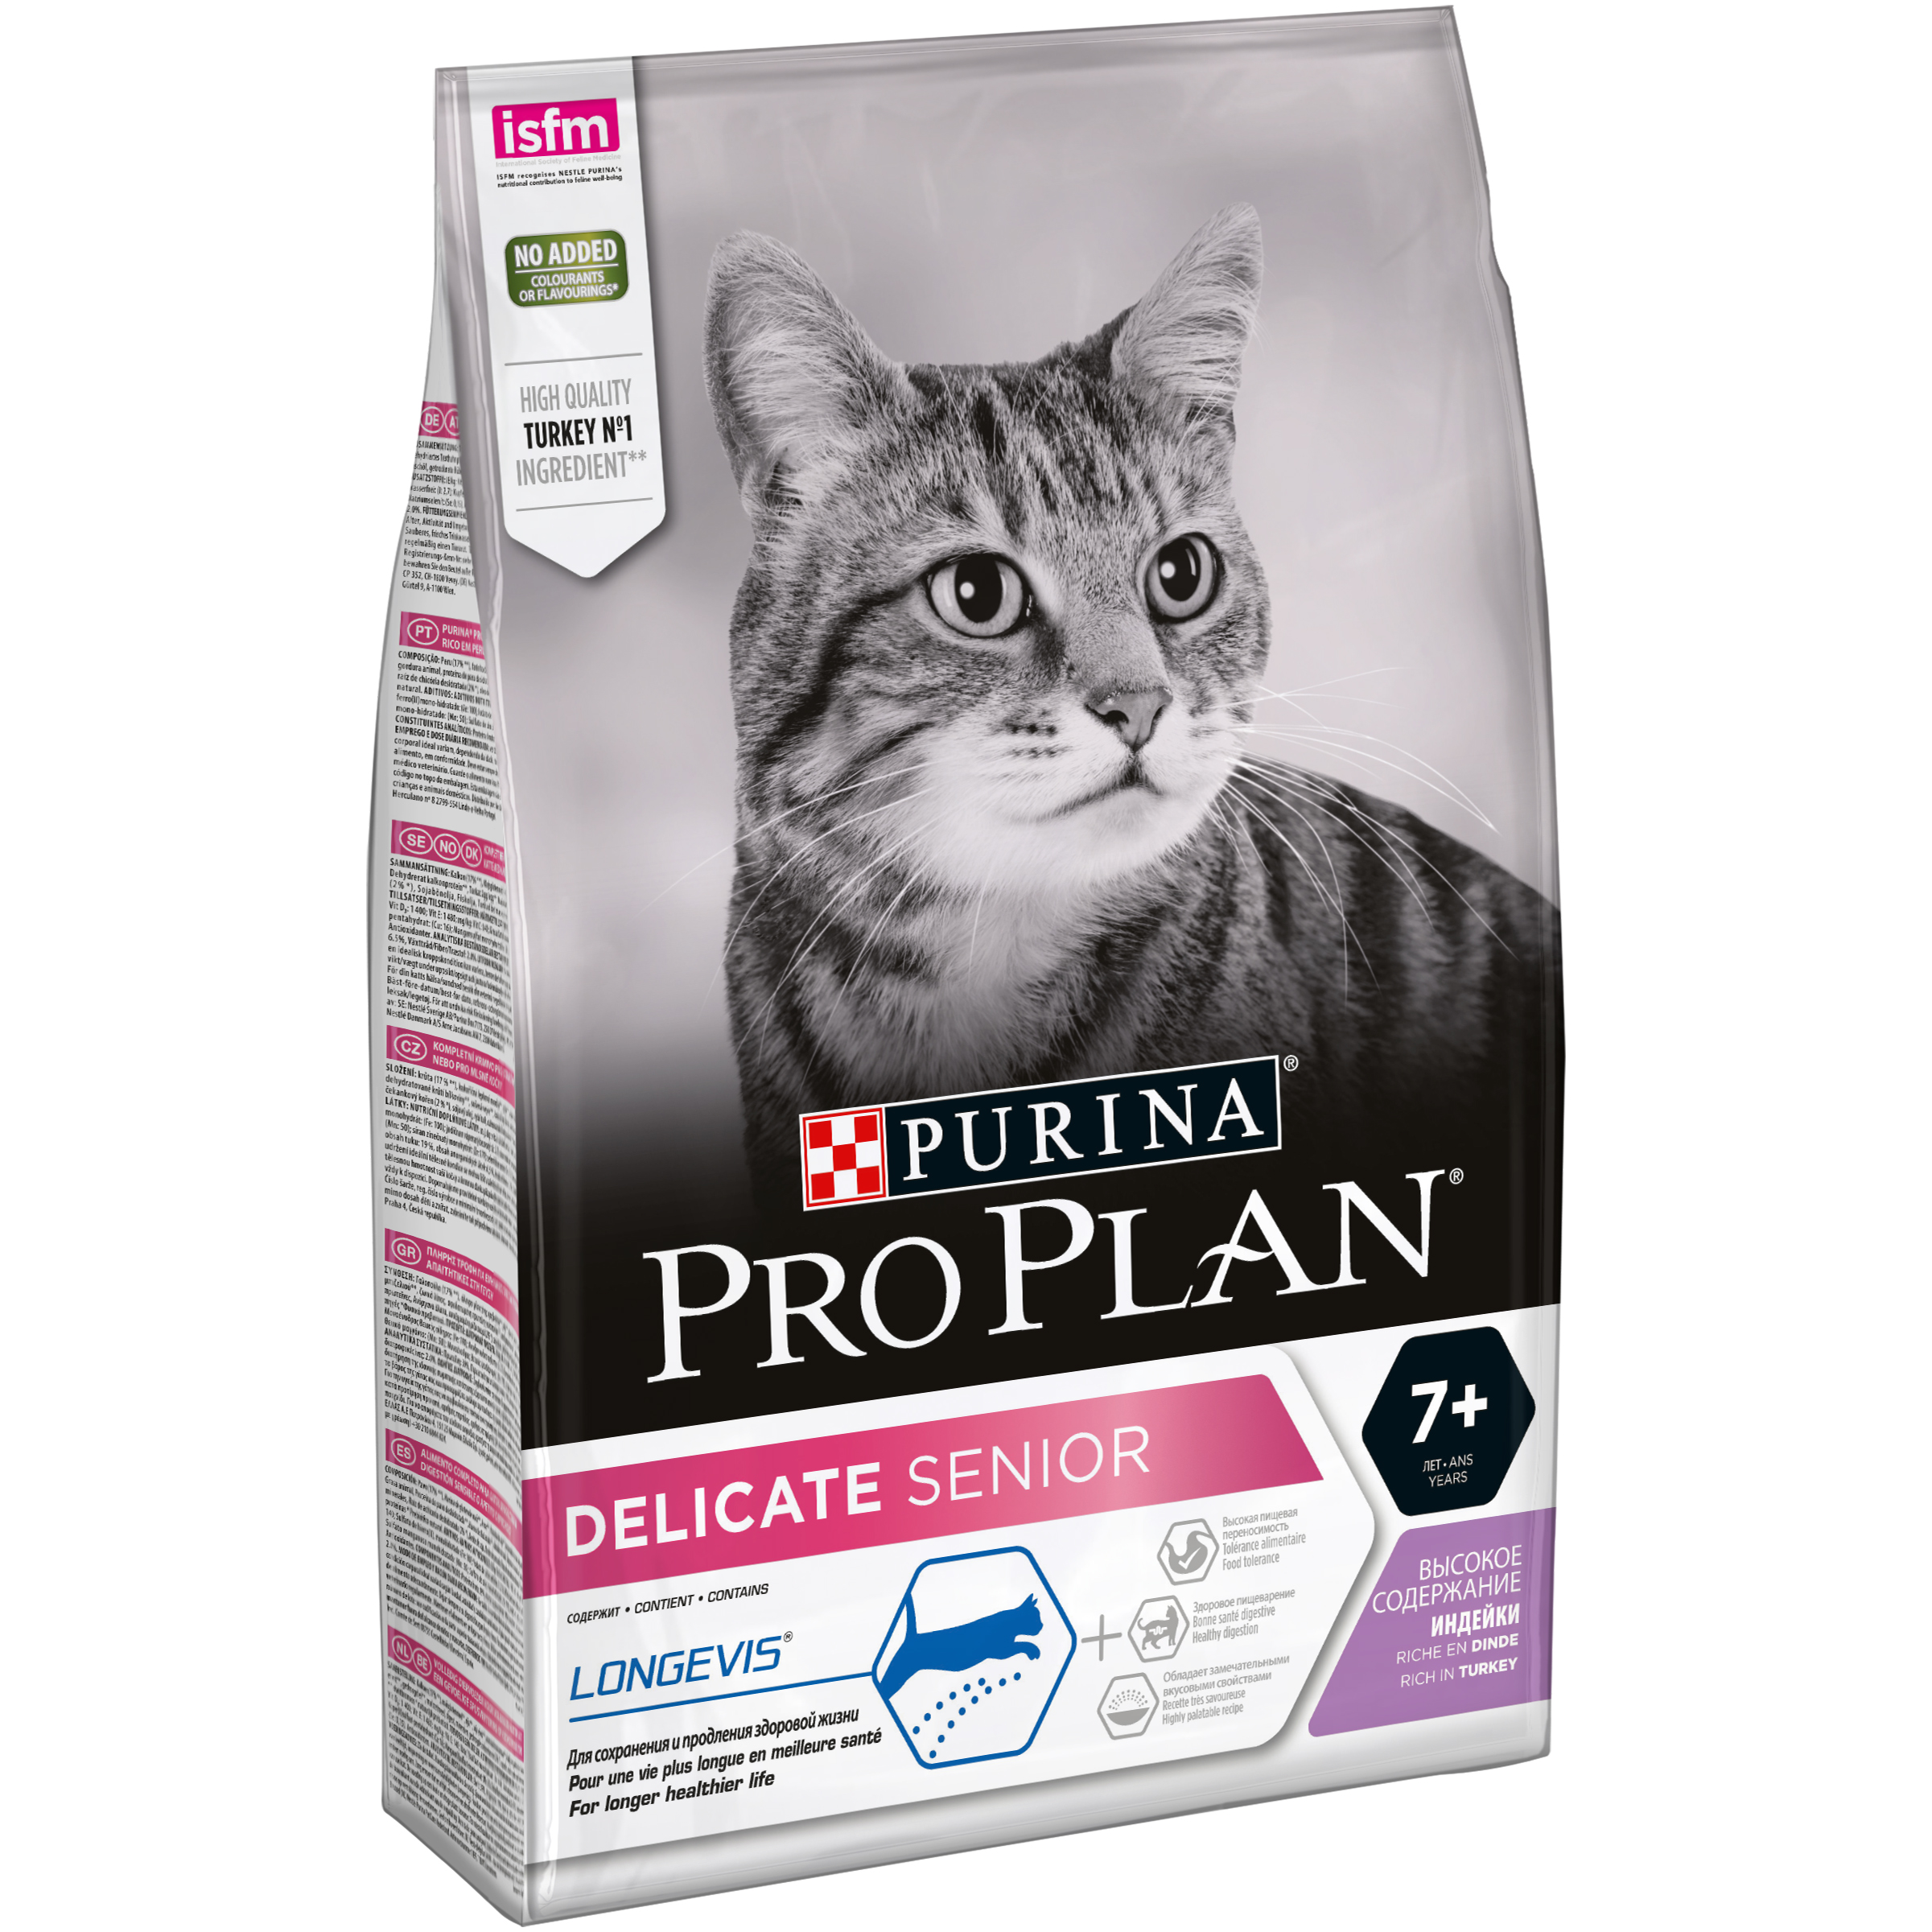 Set of dry food Pro Plan Delicate Senior for adult cats over 7 years old with sensitive digestion, turkey, 4 pcs. x 3 kg pro plan delicate senior dry food for adult cats over 7 years old with sensitive digestion with turkey package 3 kg